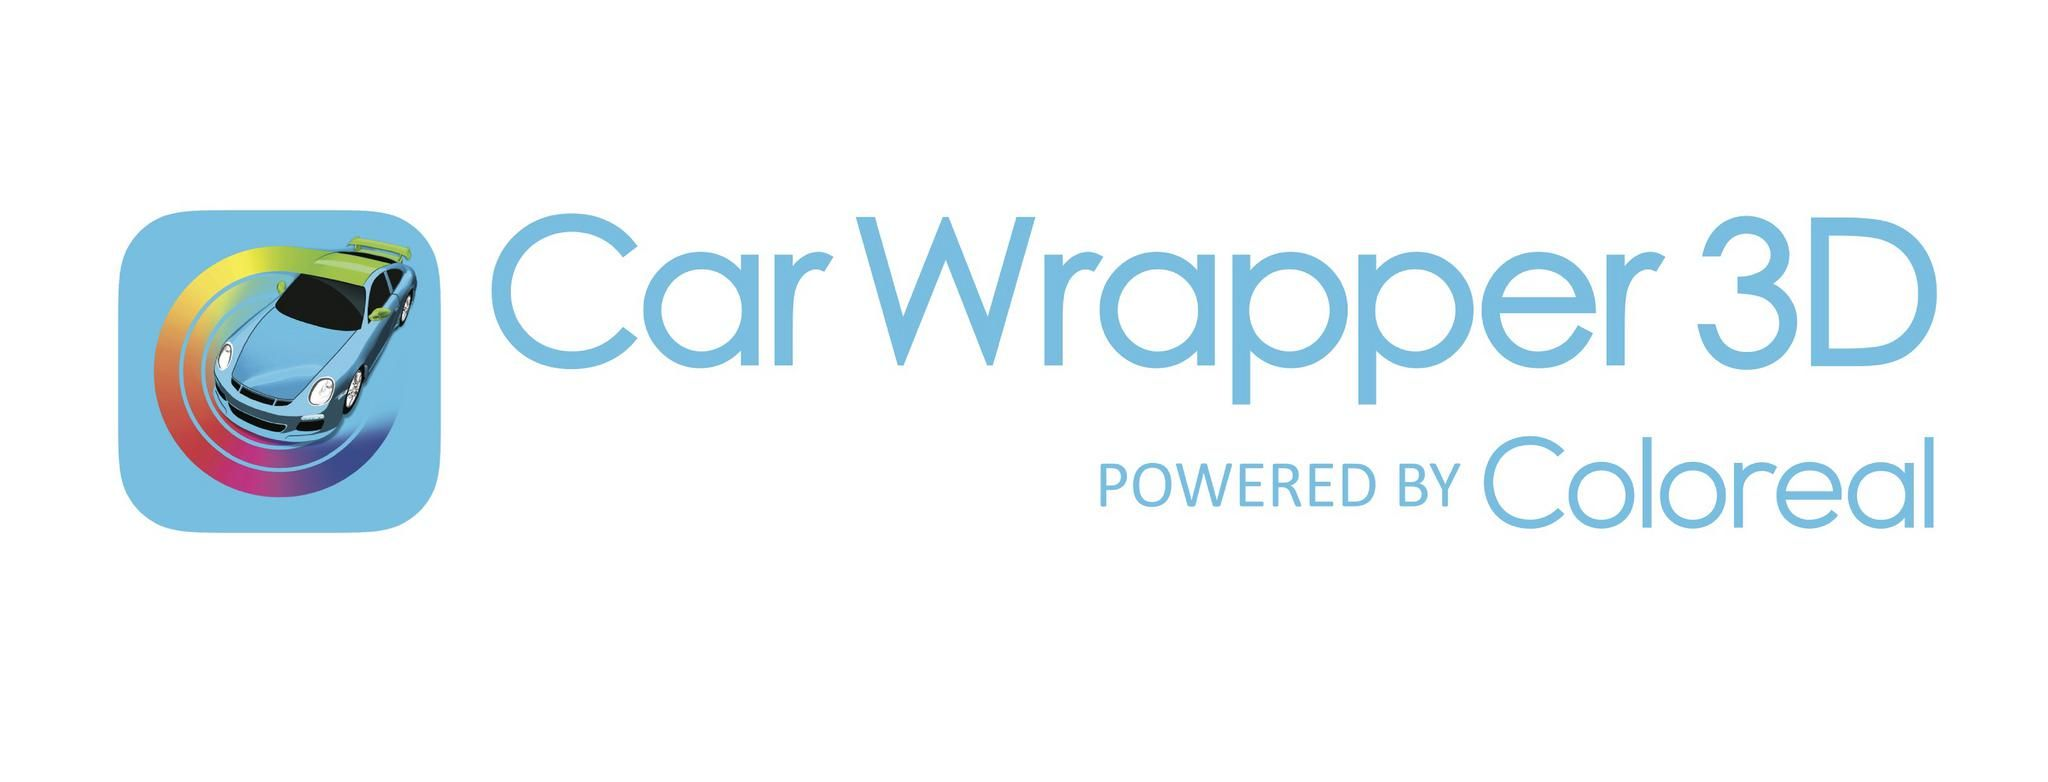 Car Wrapper 3D